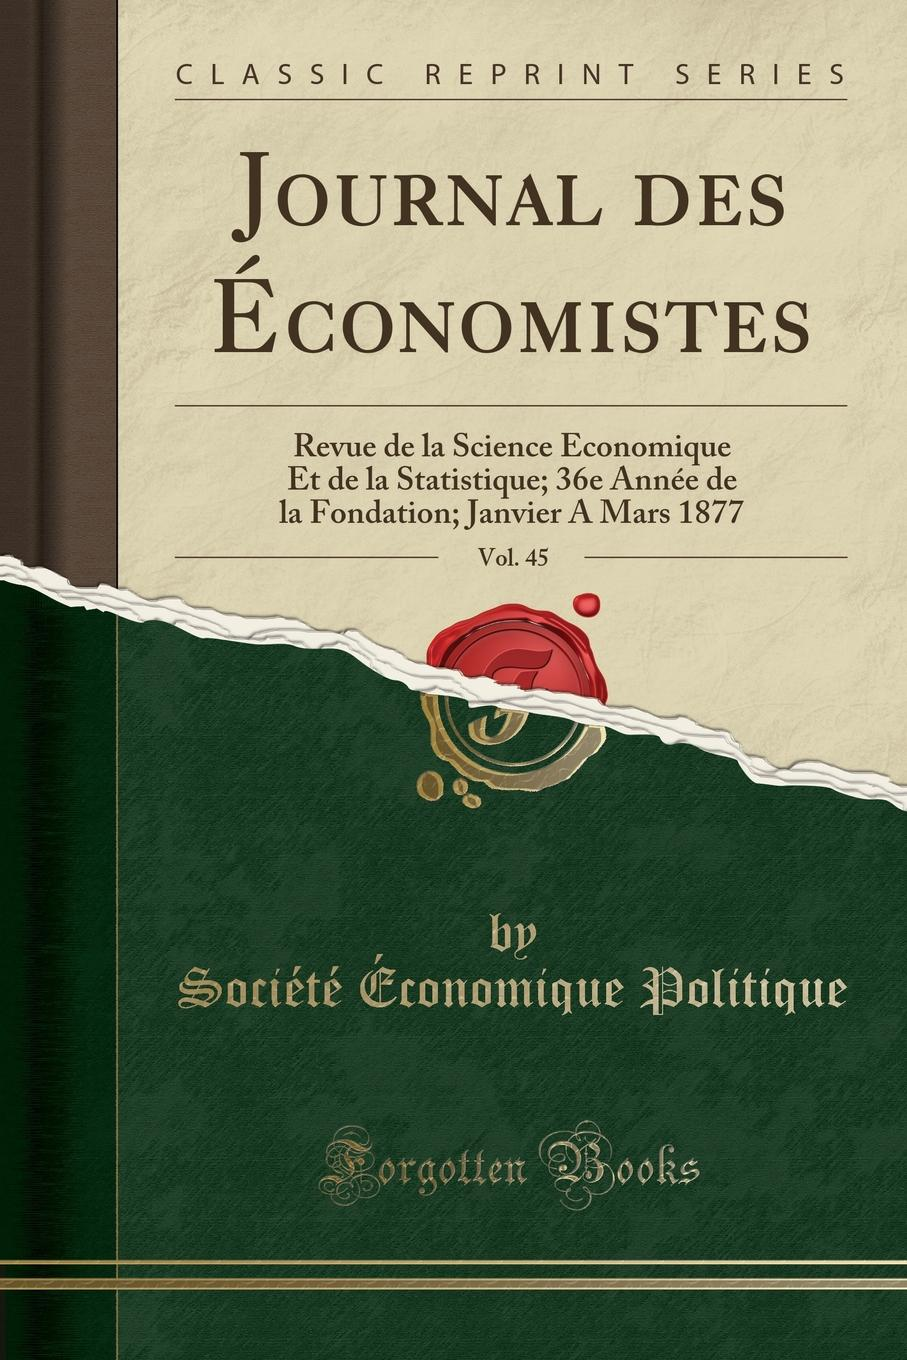 Journal des Economistes, Vol. 45. Revue de la Science Economique Et de la Statistique; 36e Annee de la Fondation; Janvier A Mars 1877 (Classic Reprint) Excerpt from Journal desР?conomistes, Vol. 45: Revue de la Science...